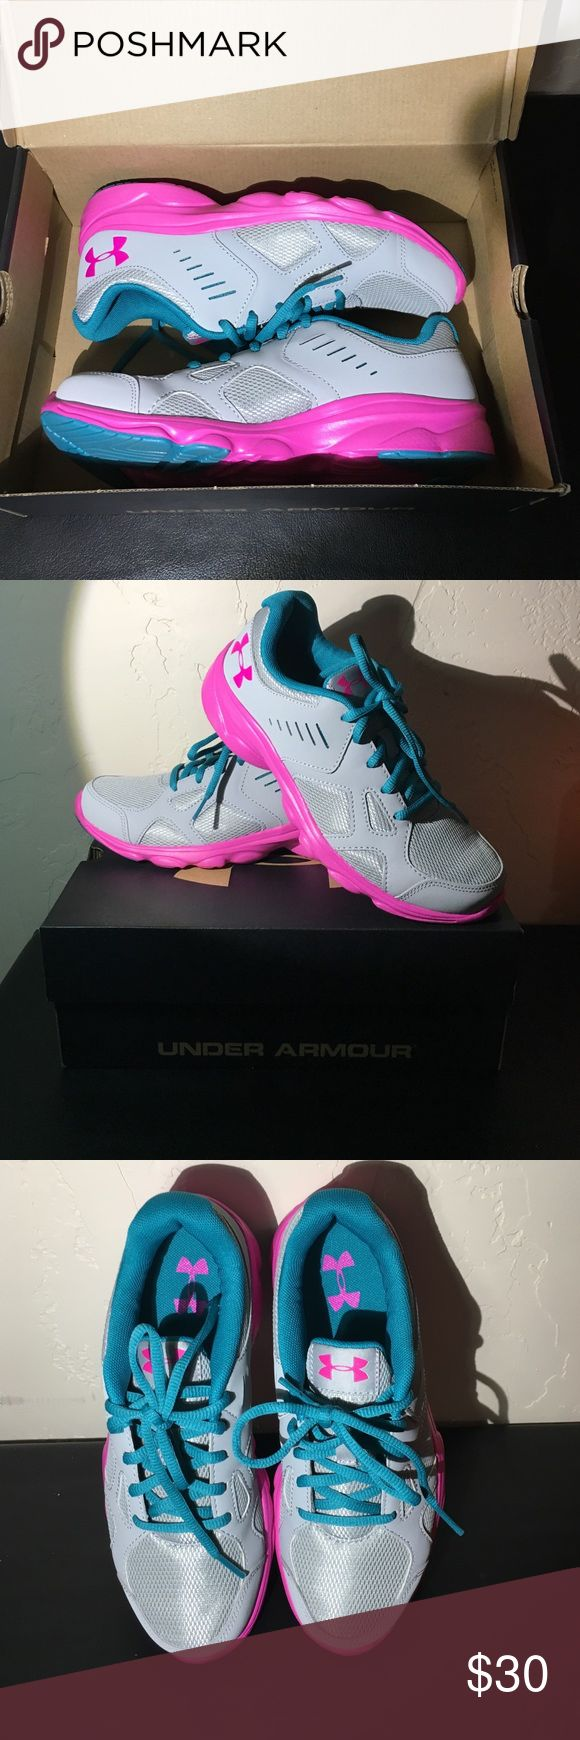 Under armour girls tennis shoes. New in box New in box. Would make a great x mas present. Open to reasonable offers 👍🏼 Under Armour Shoes Sneakers